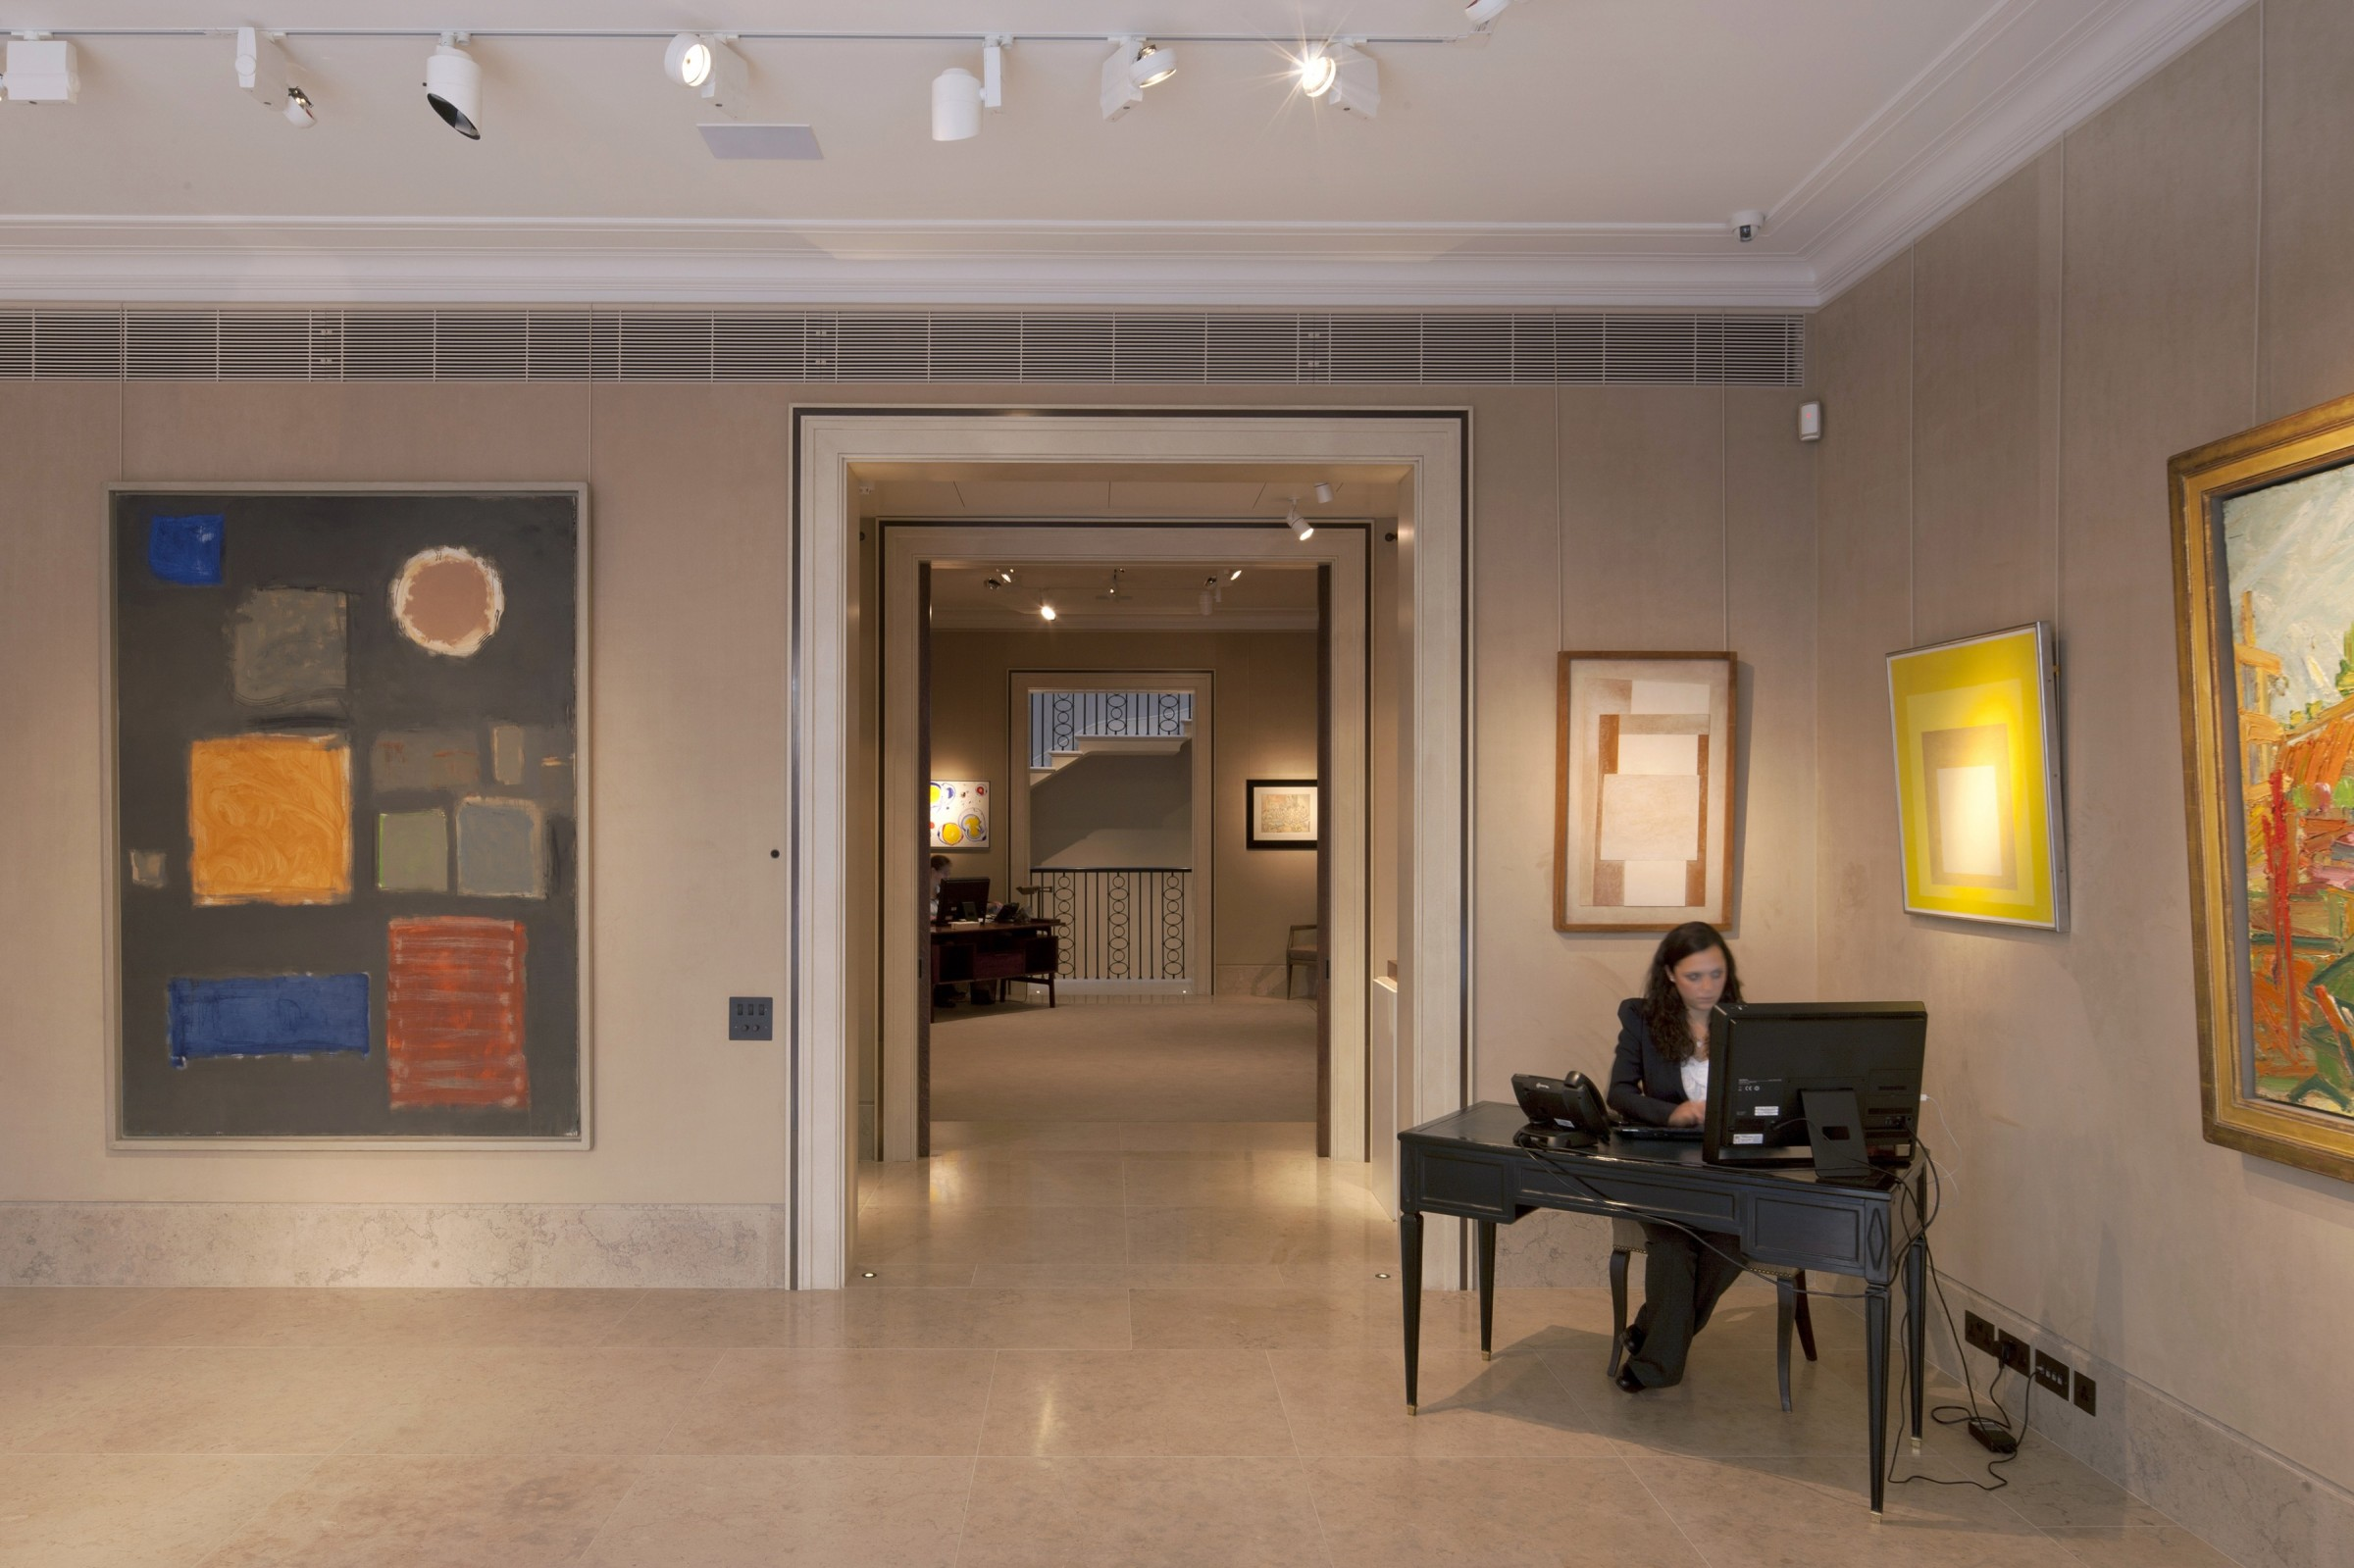 Richard Green Gallery interior, New Bond Street, London